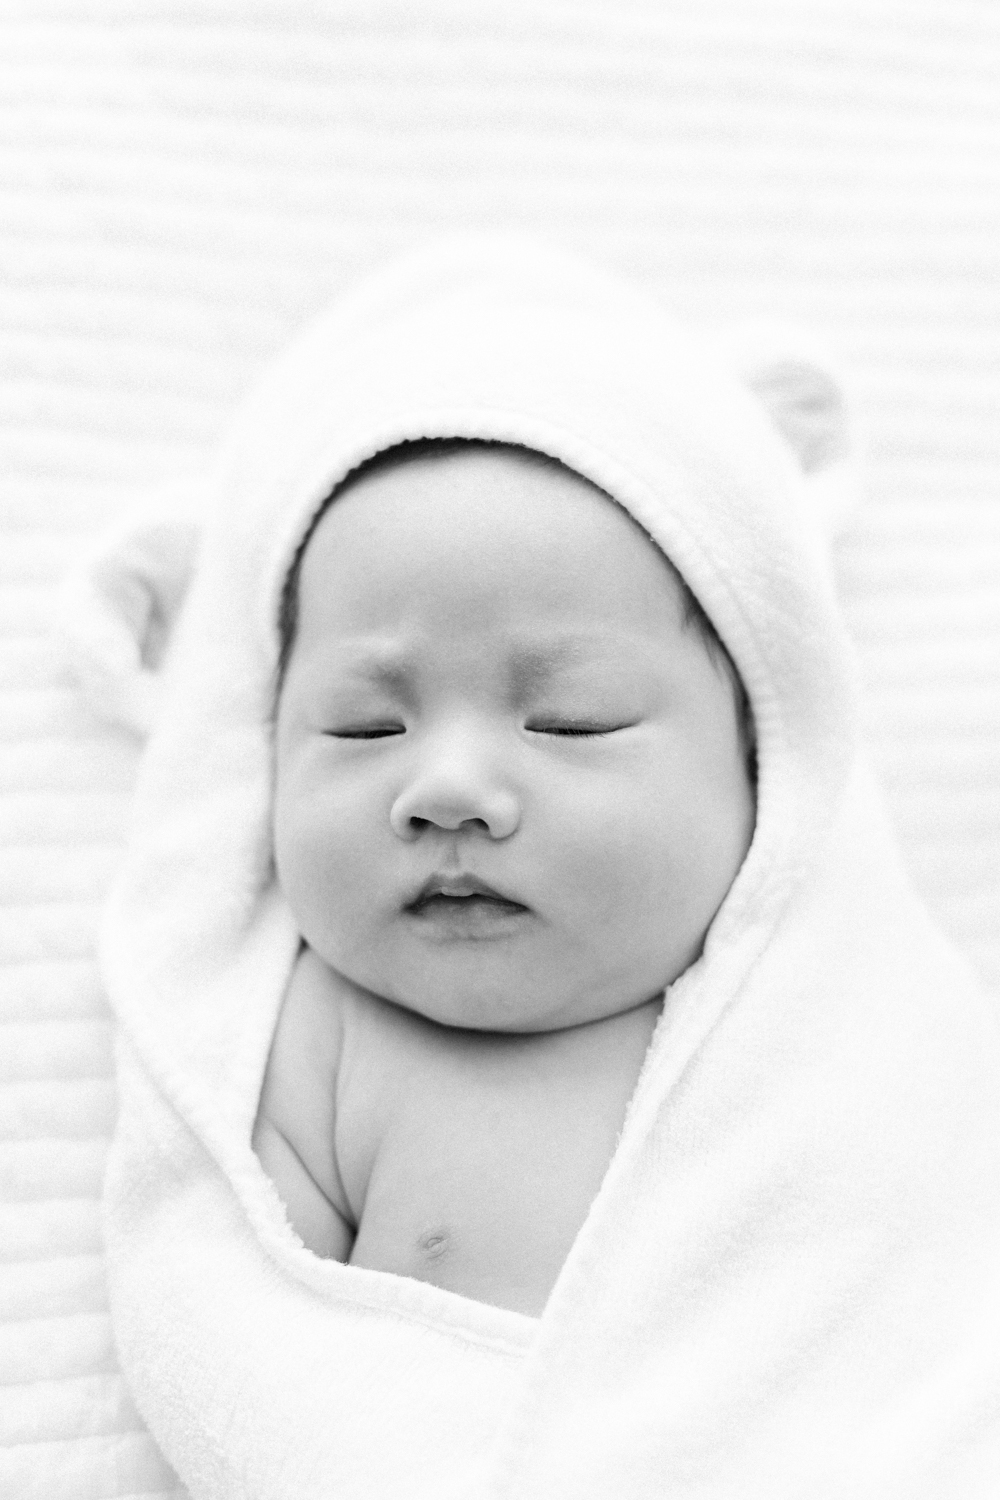 lissieloomis_photography_nyc_photographer_losangeles_baby_newbornphotography-11.JPG